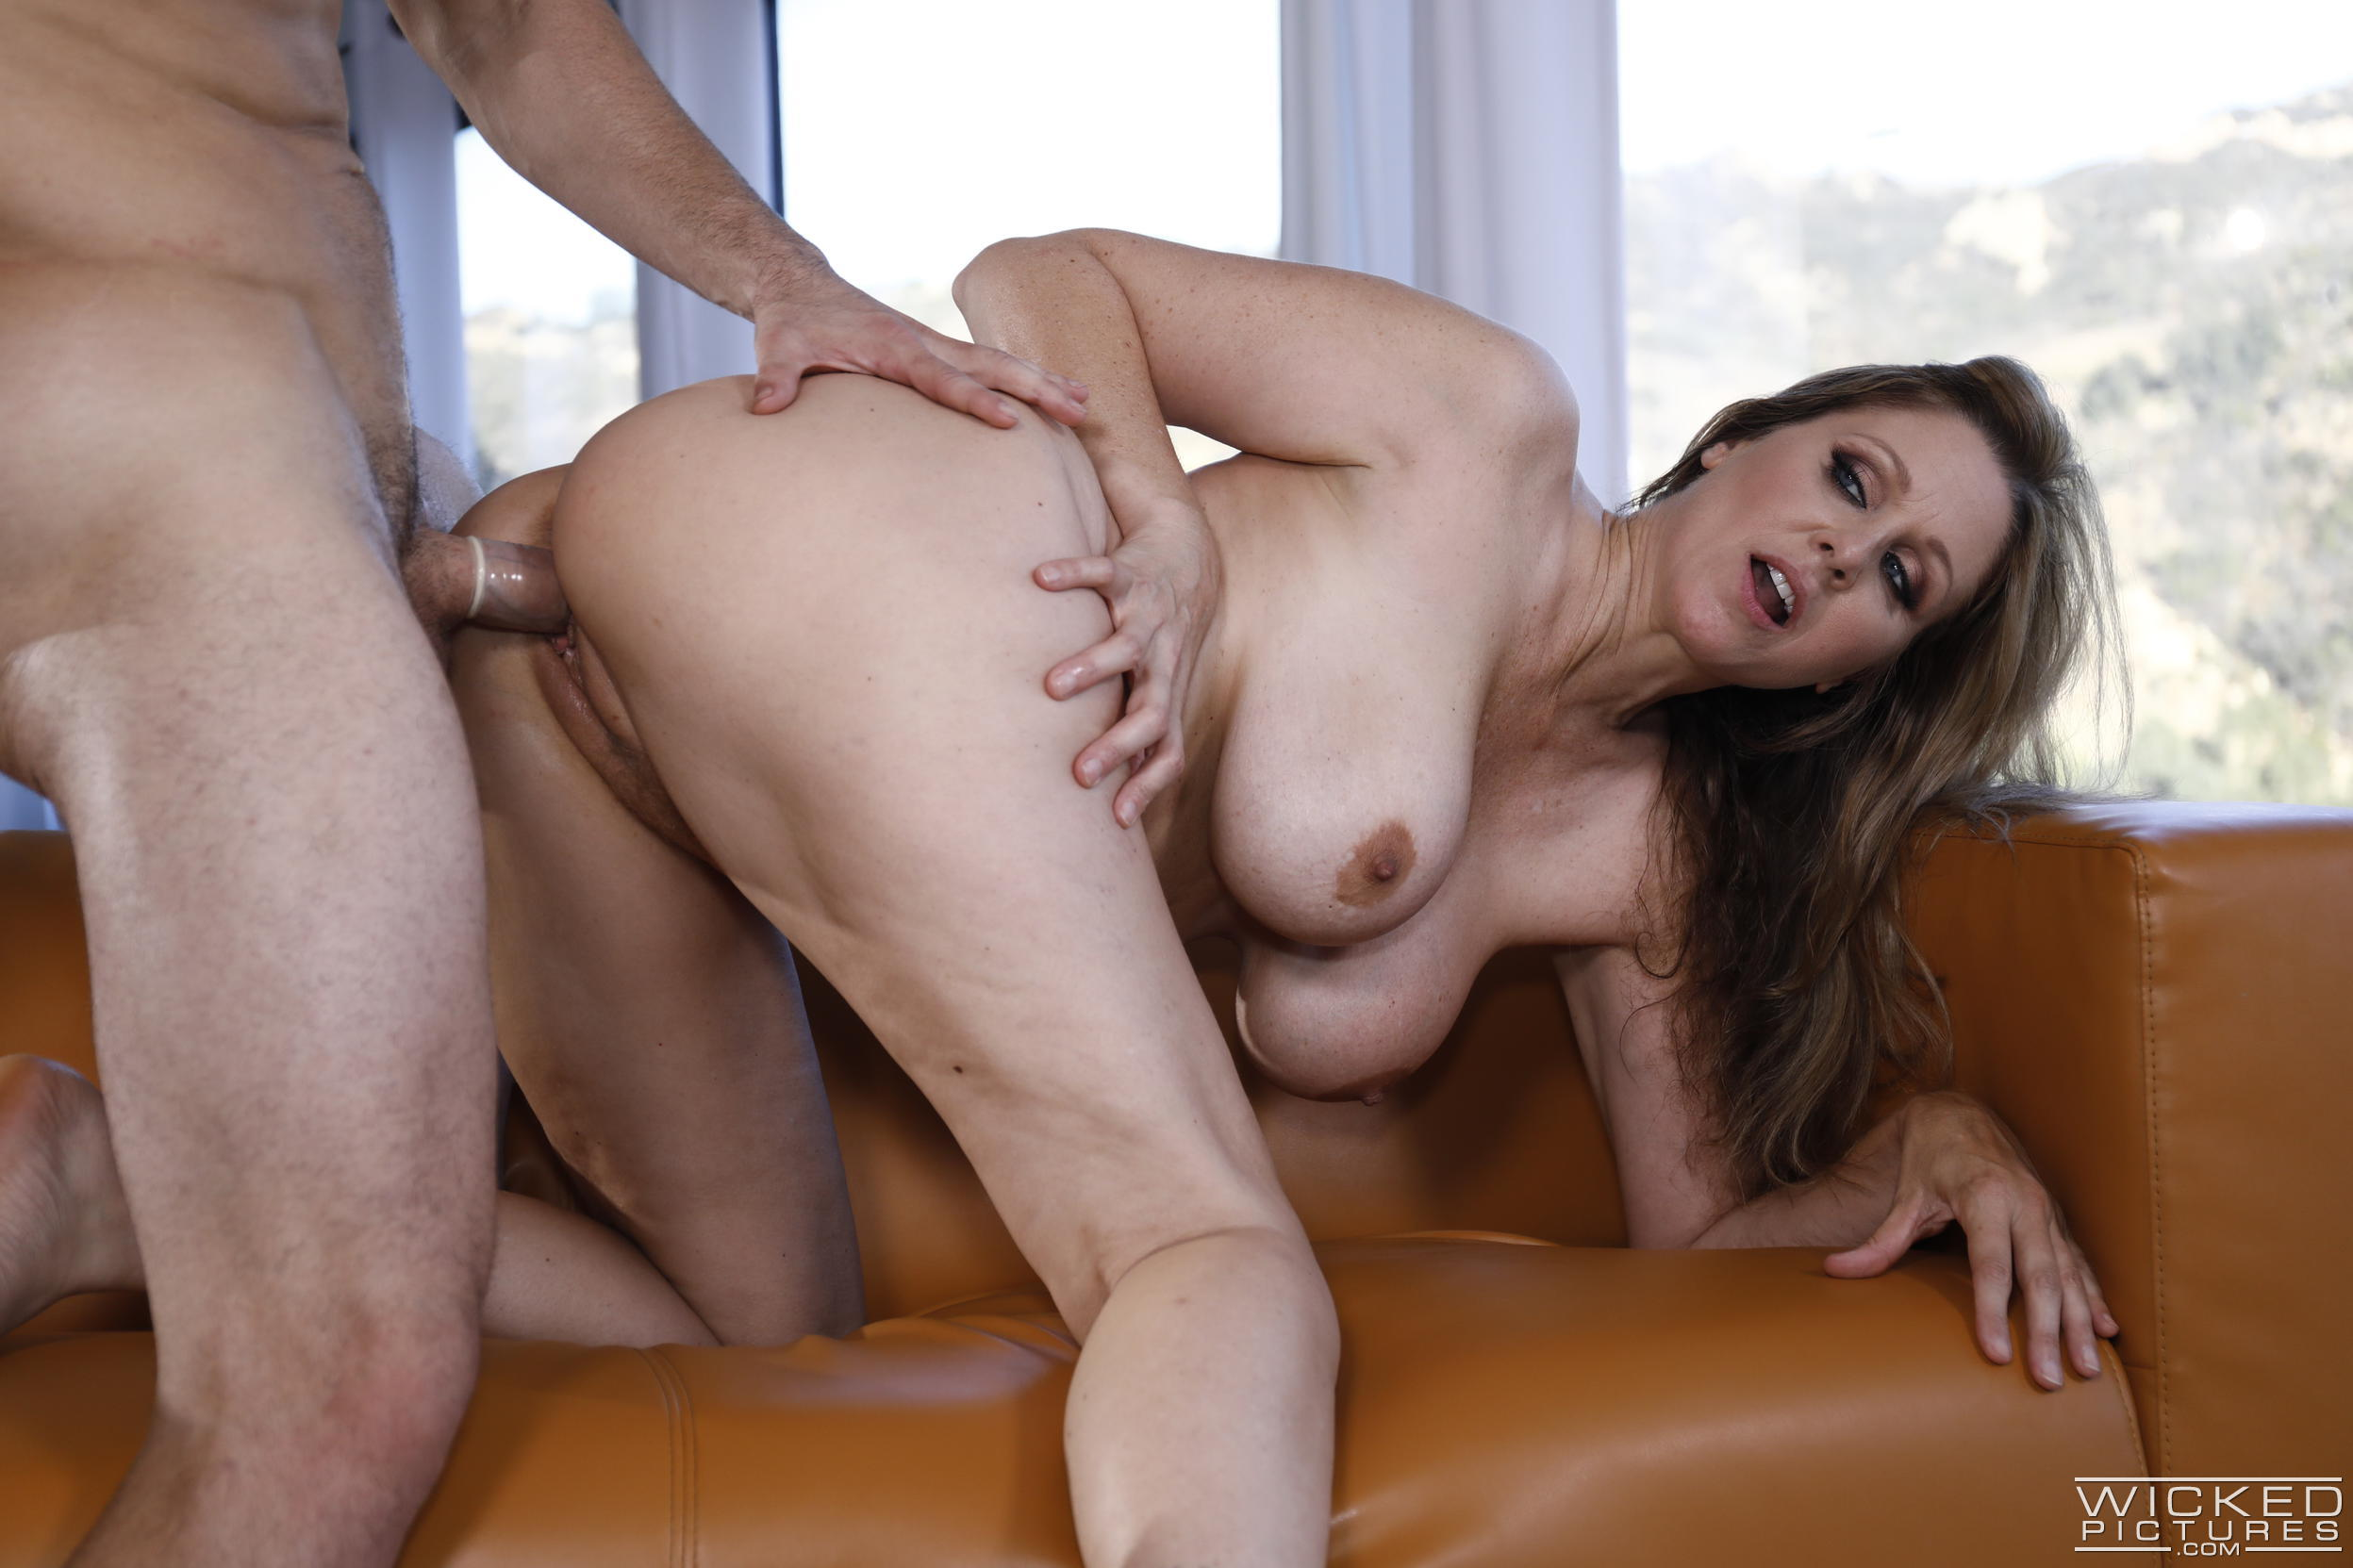 Fantasize sex with my girlfriends mom 6